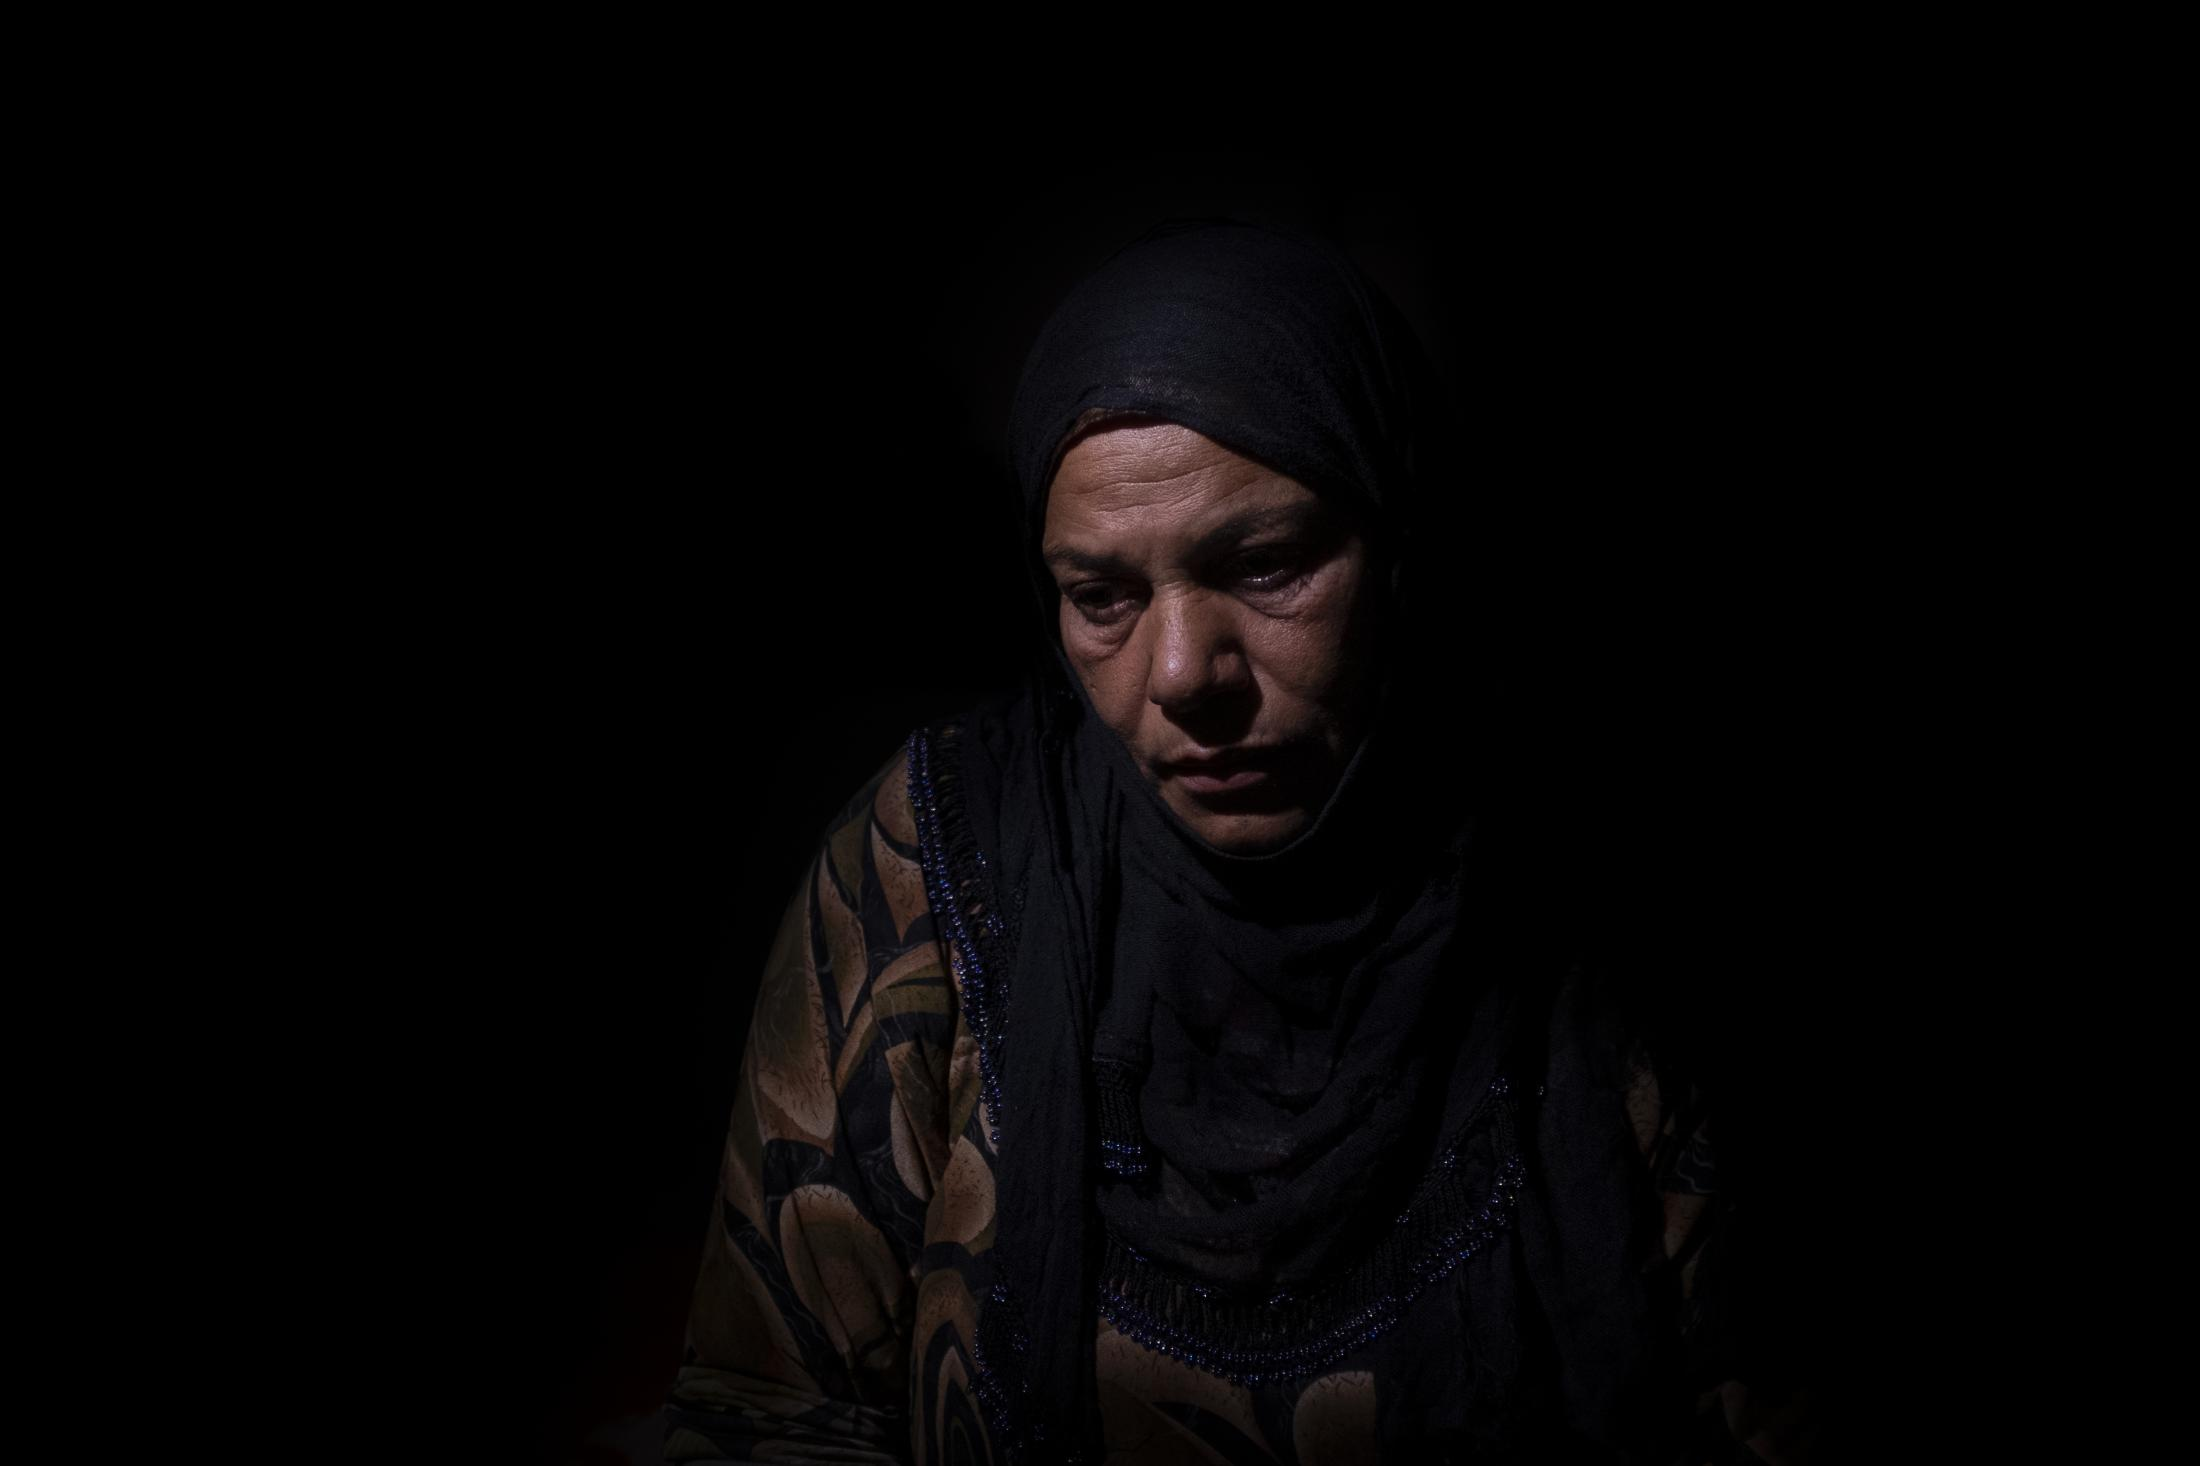 Zekia Halaf, 36, left her village in Serekaniye area in October 9, just when Turkey launched its offensive over the area. She´s lost four brothers in the Syrian war, two fighting within the Syrian Army ranks against Jabhat al Nusra and the other two fighting alongside the Syrian Democratic Forces. The last one was killed in a drone attack last October. Zekia is one among approximately 200 IDPs. After the withdrawal of US troops from northern Syria in October 2019, Turkey launched an offensive against the predominantly Kurdish areas in the northeast of the country along Islamist forces. Calls for war crimes investigations into the conduct of Ankara-backed militias are mounting ever since. (Andoni Lubaki / Euskal Fondoa)